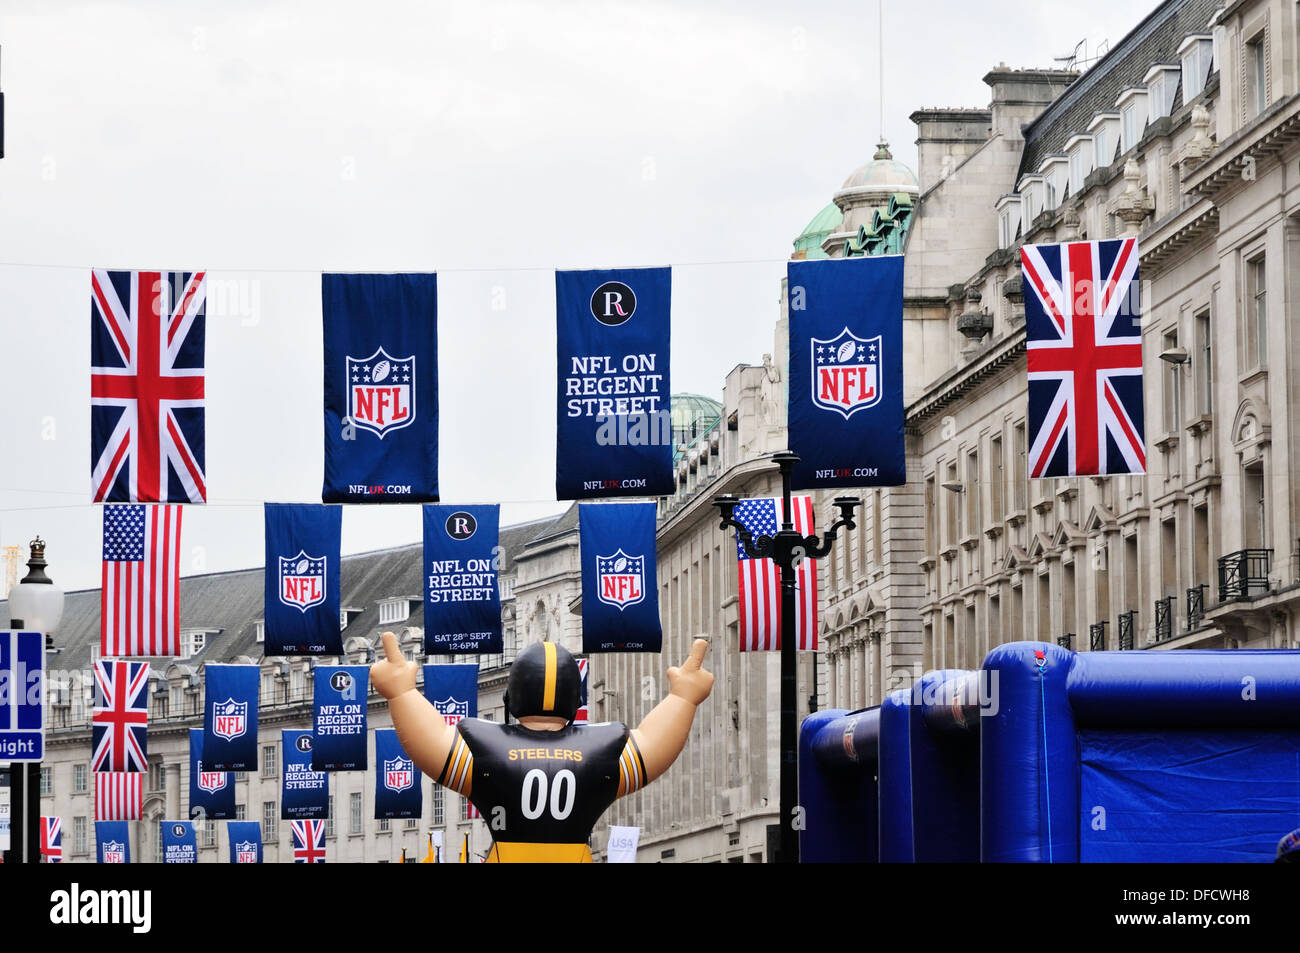 Flags and banners hanging above Regent Street during the NFL block party on 28th September 2013 - Stock Image